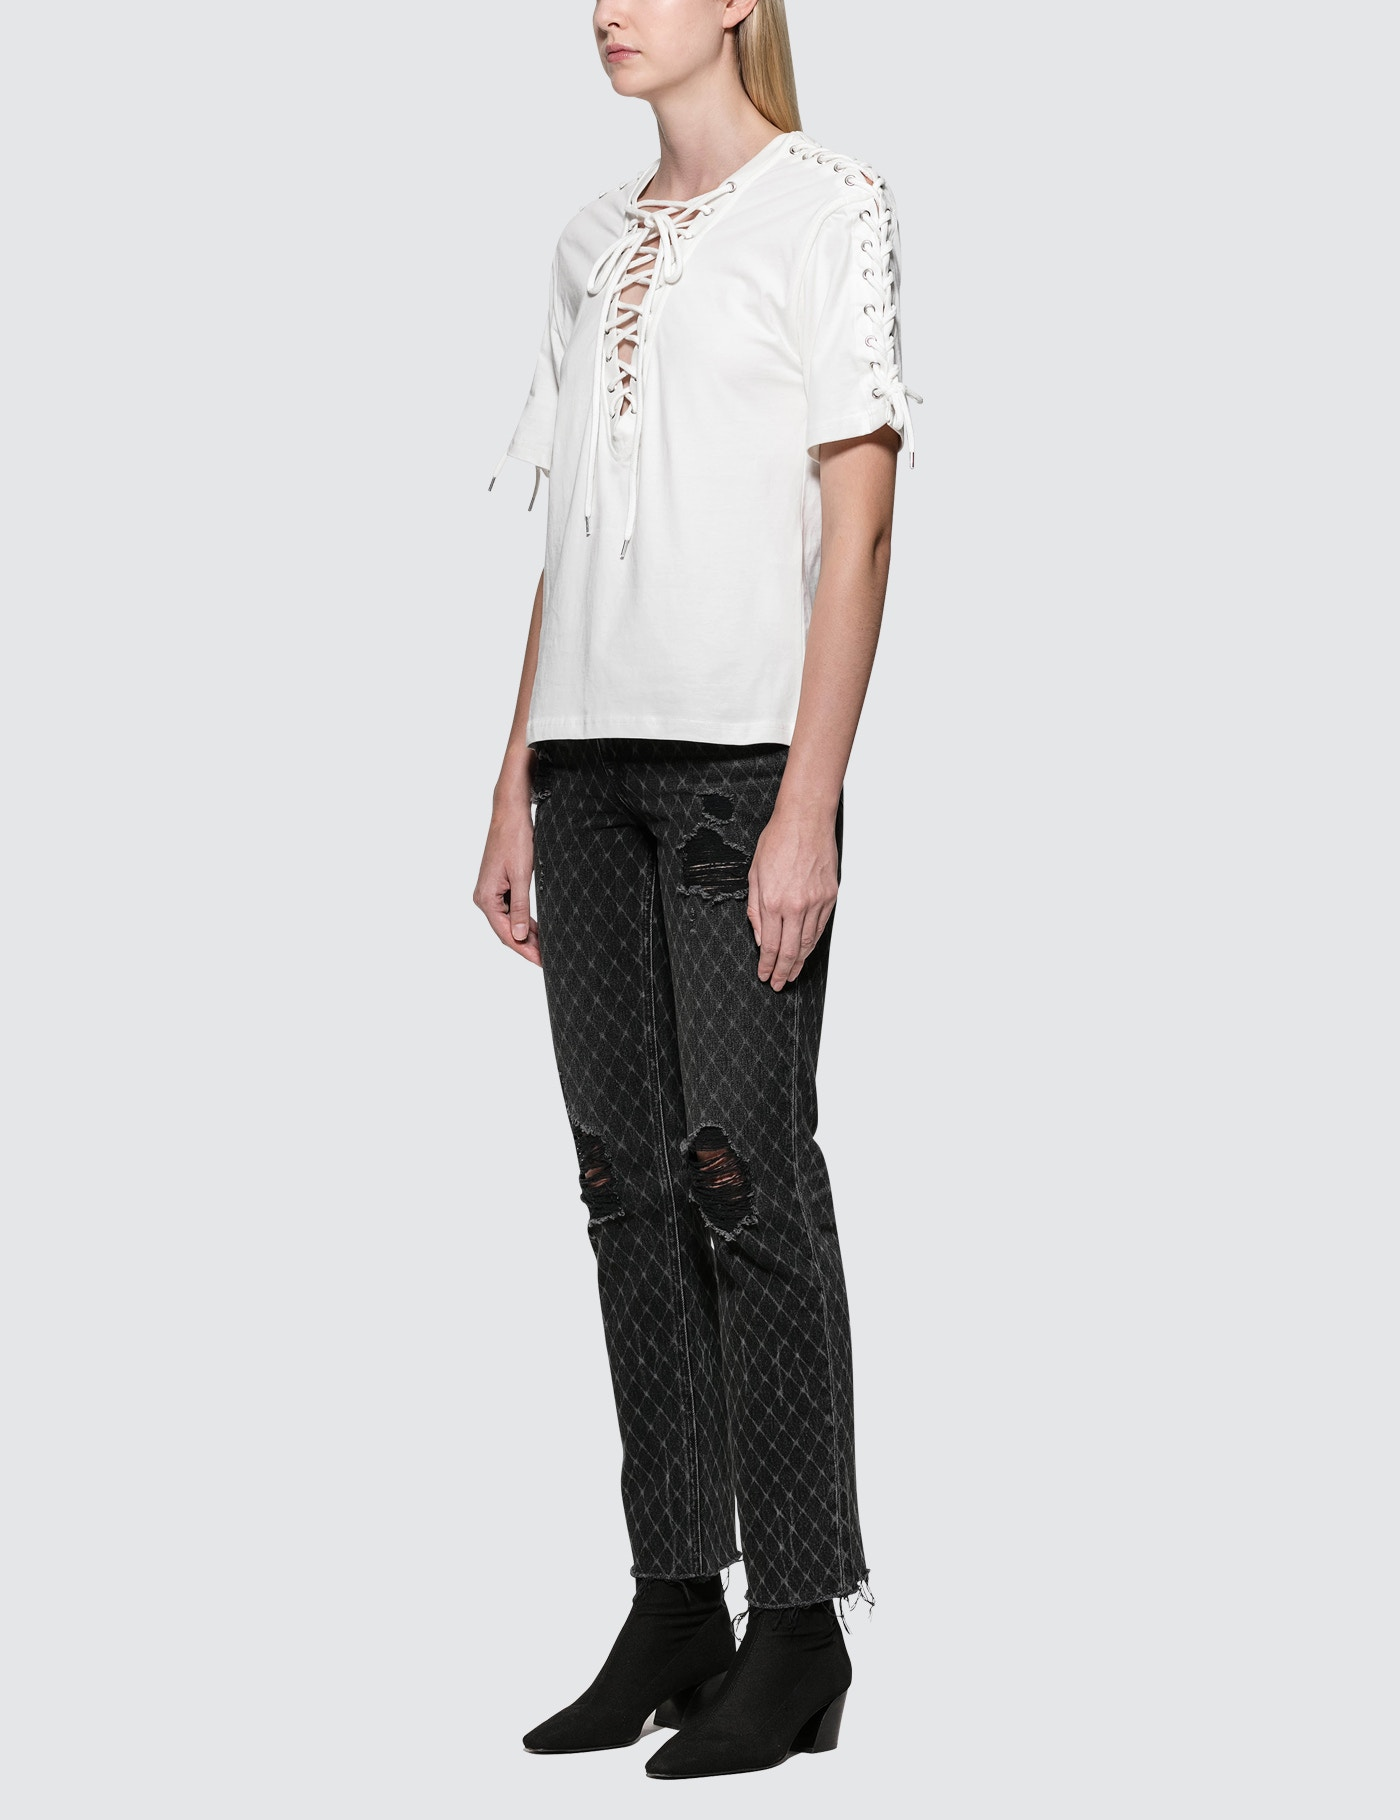 McQ Alexander McQueen Laced S/S Top